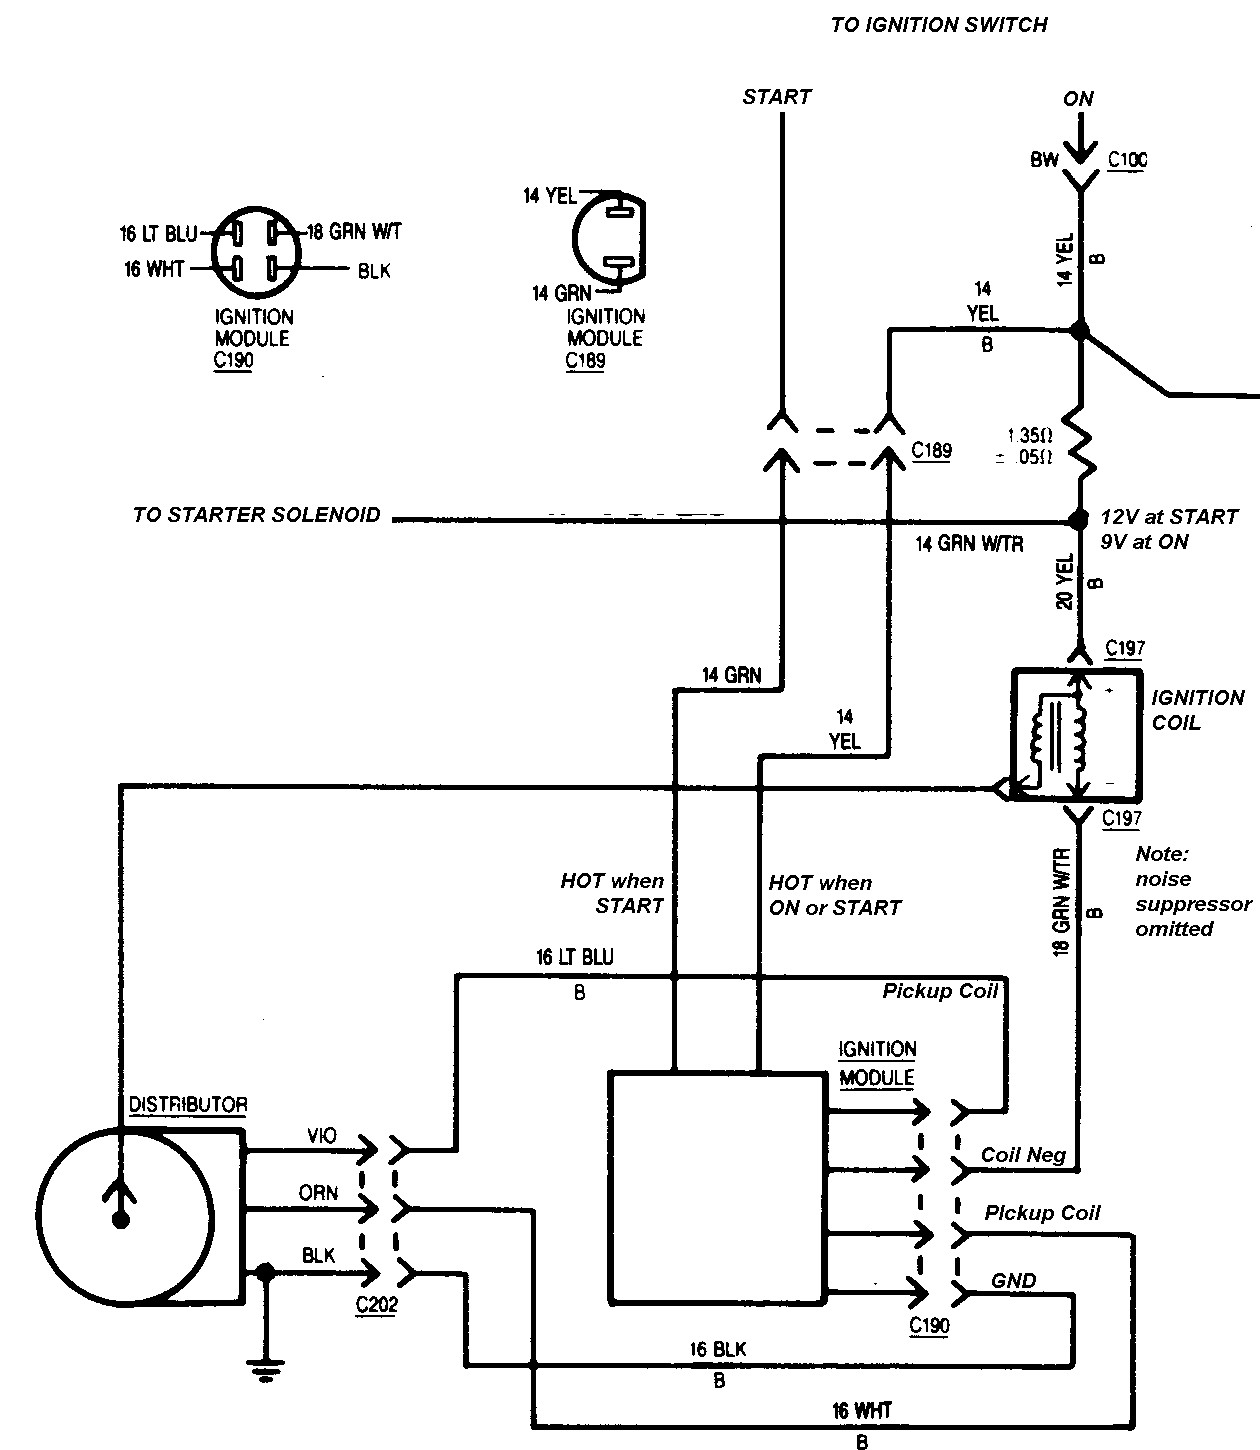 small resolution of chevy 4 3 wiring harness wiring diagram diagram moreover 350 chevy engine likewise chevy fuel pump wiring